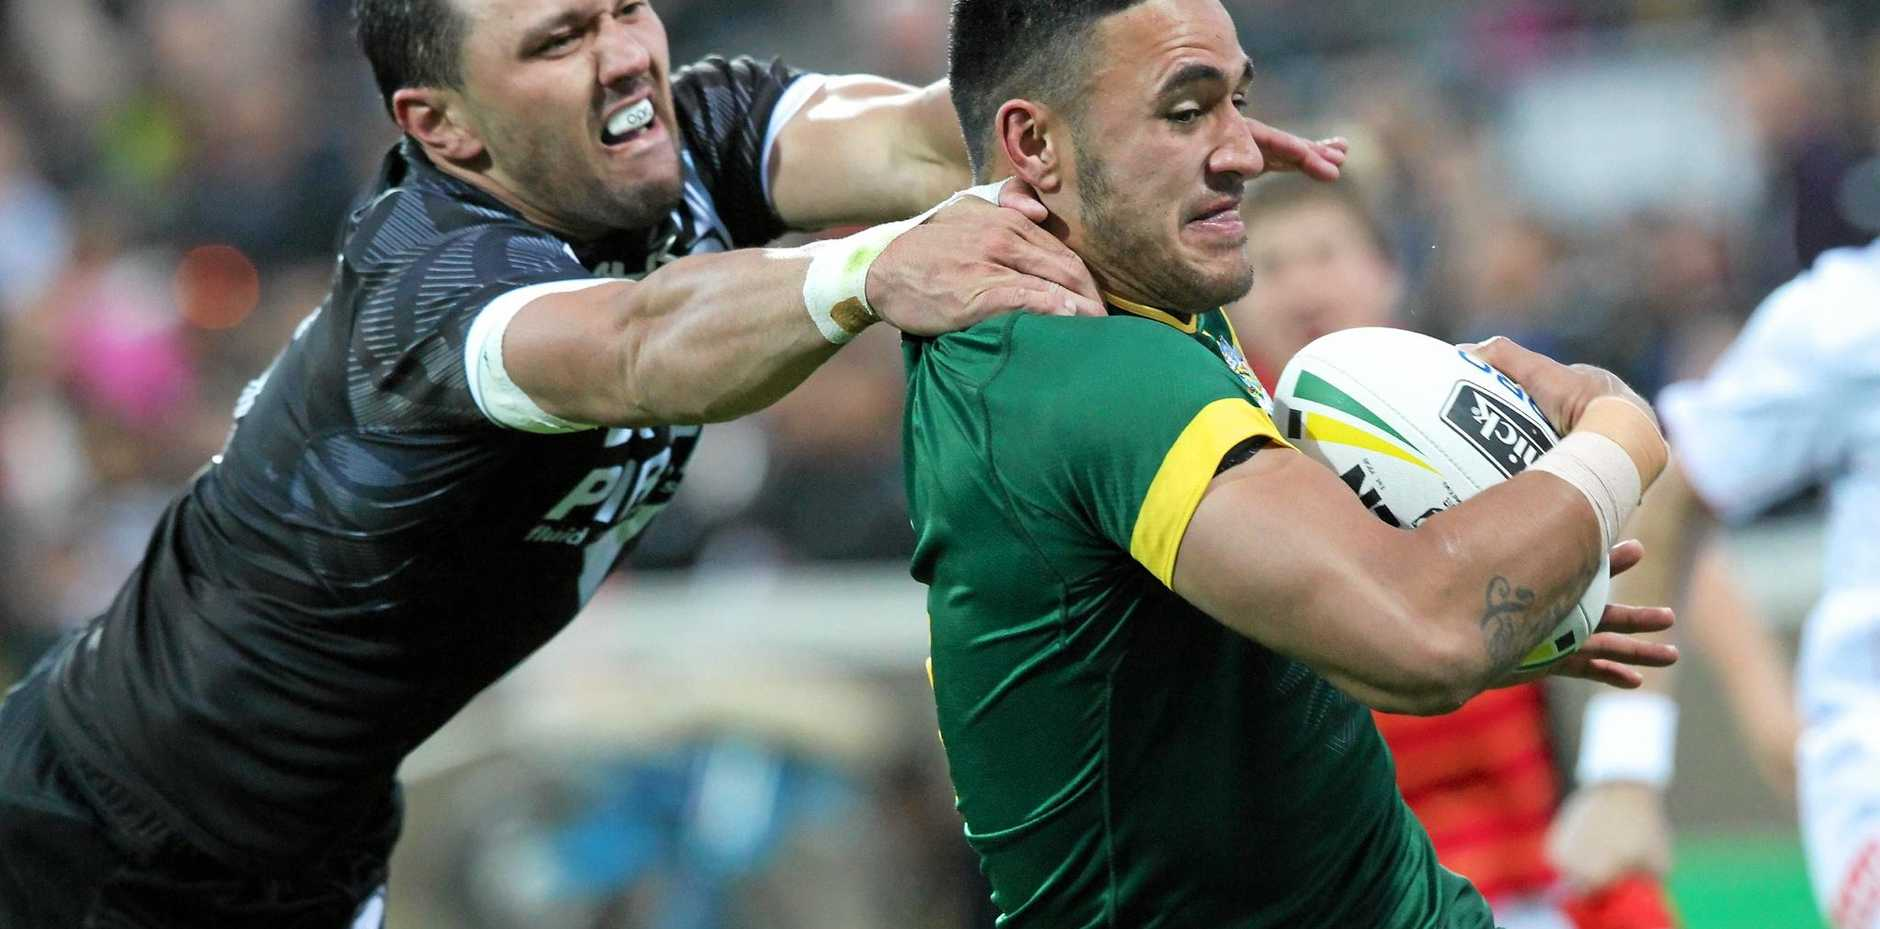 Valentine Holmes of the Kangaroos evades a tackle to score a try against the Kiwis.